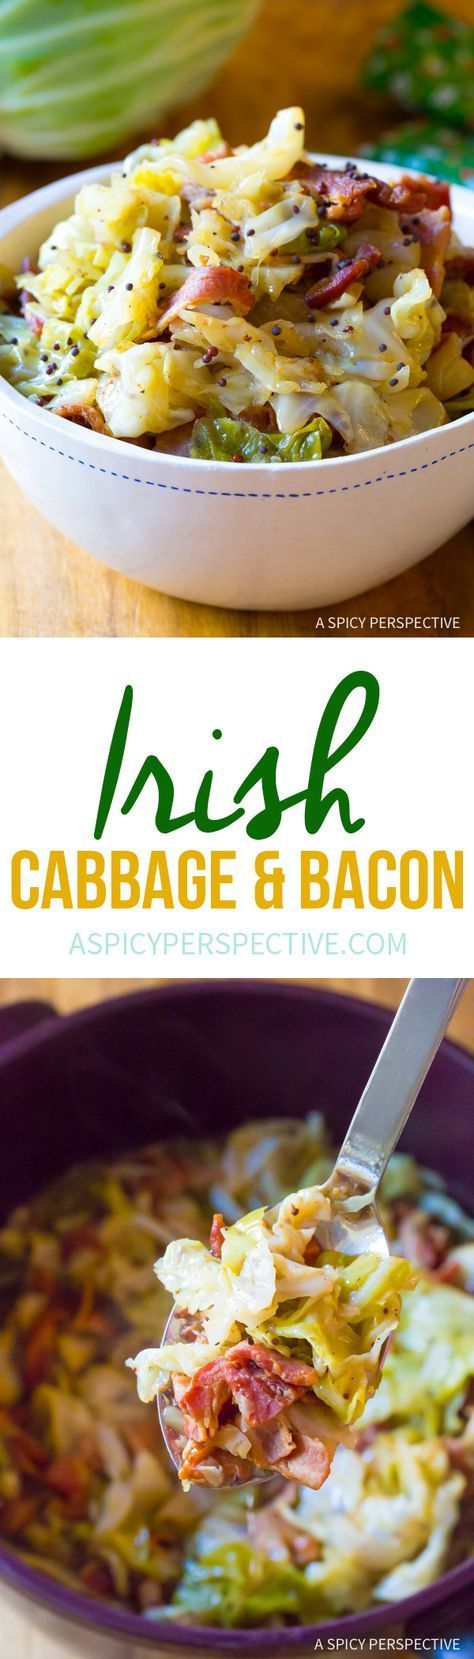 Irish Cabbage and Bacon Recipe for Saint Patrick's Day!